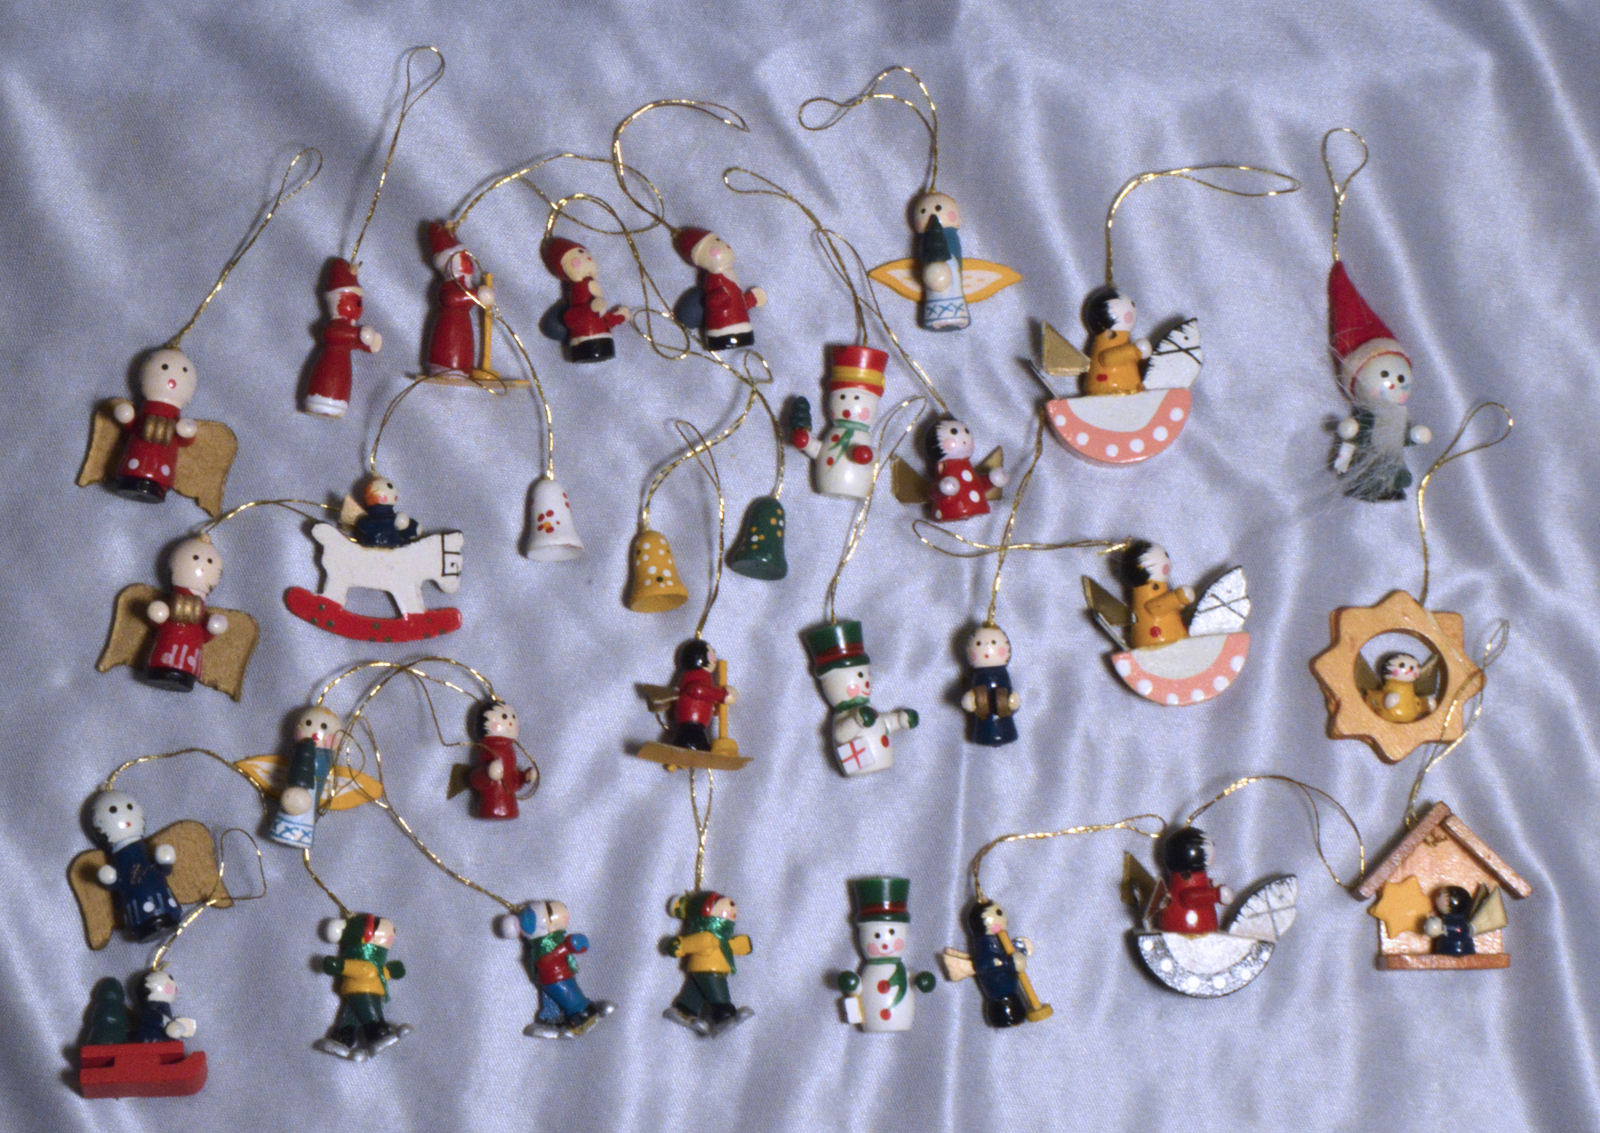 #1999 Wooden Miniature Ornaments 31 pieces